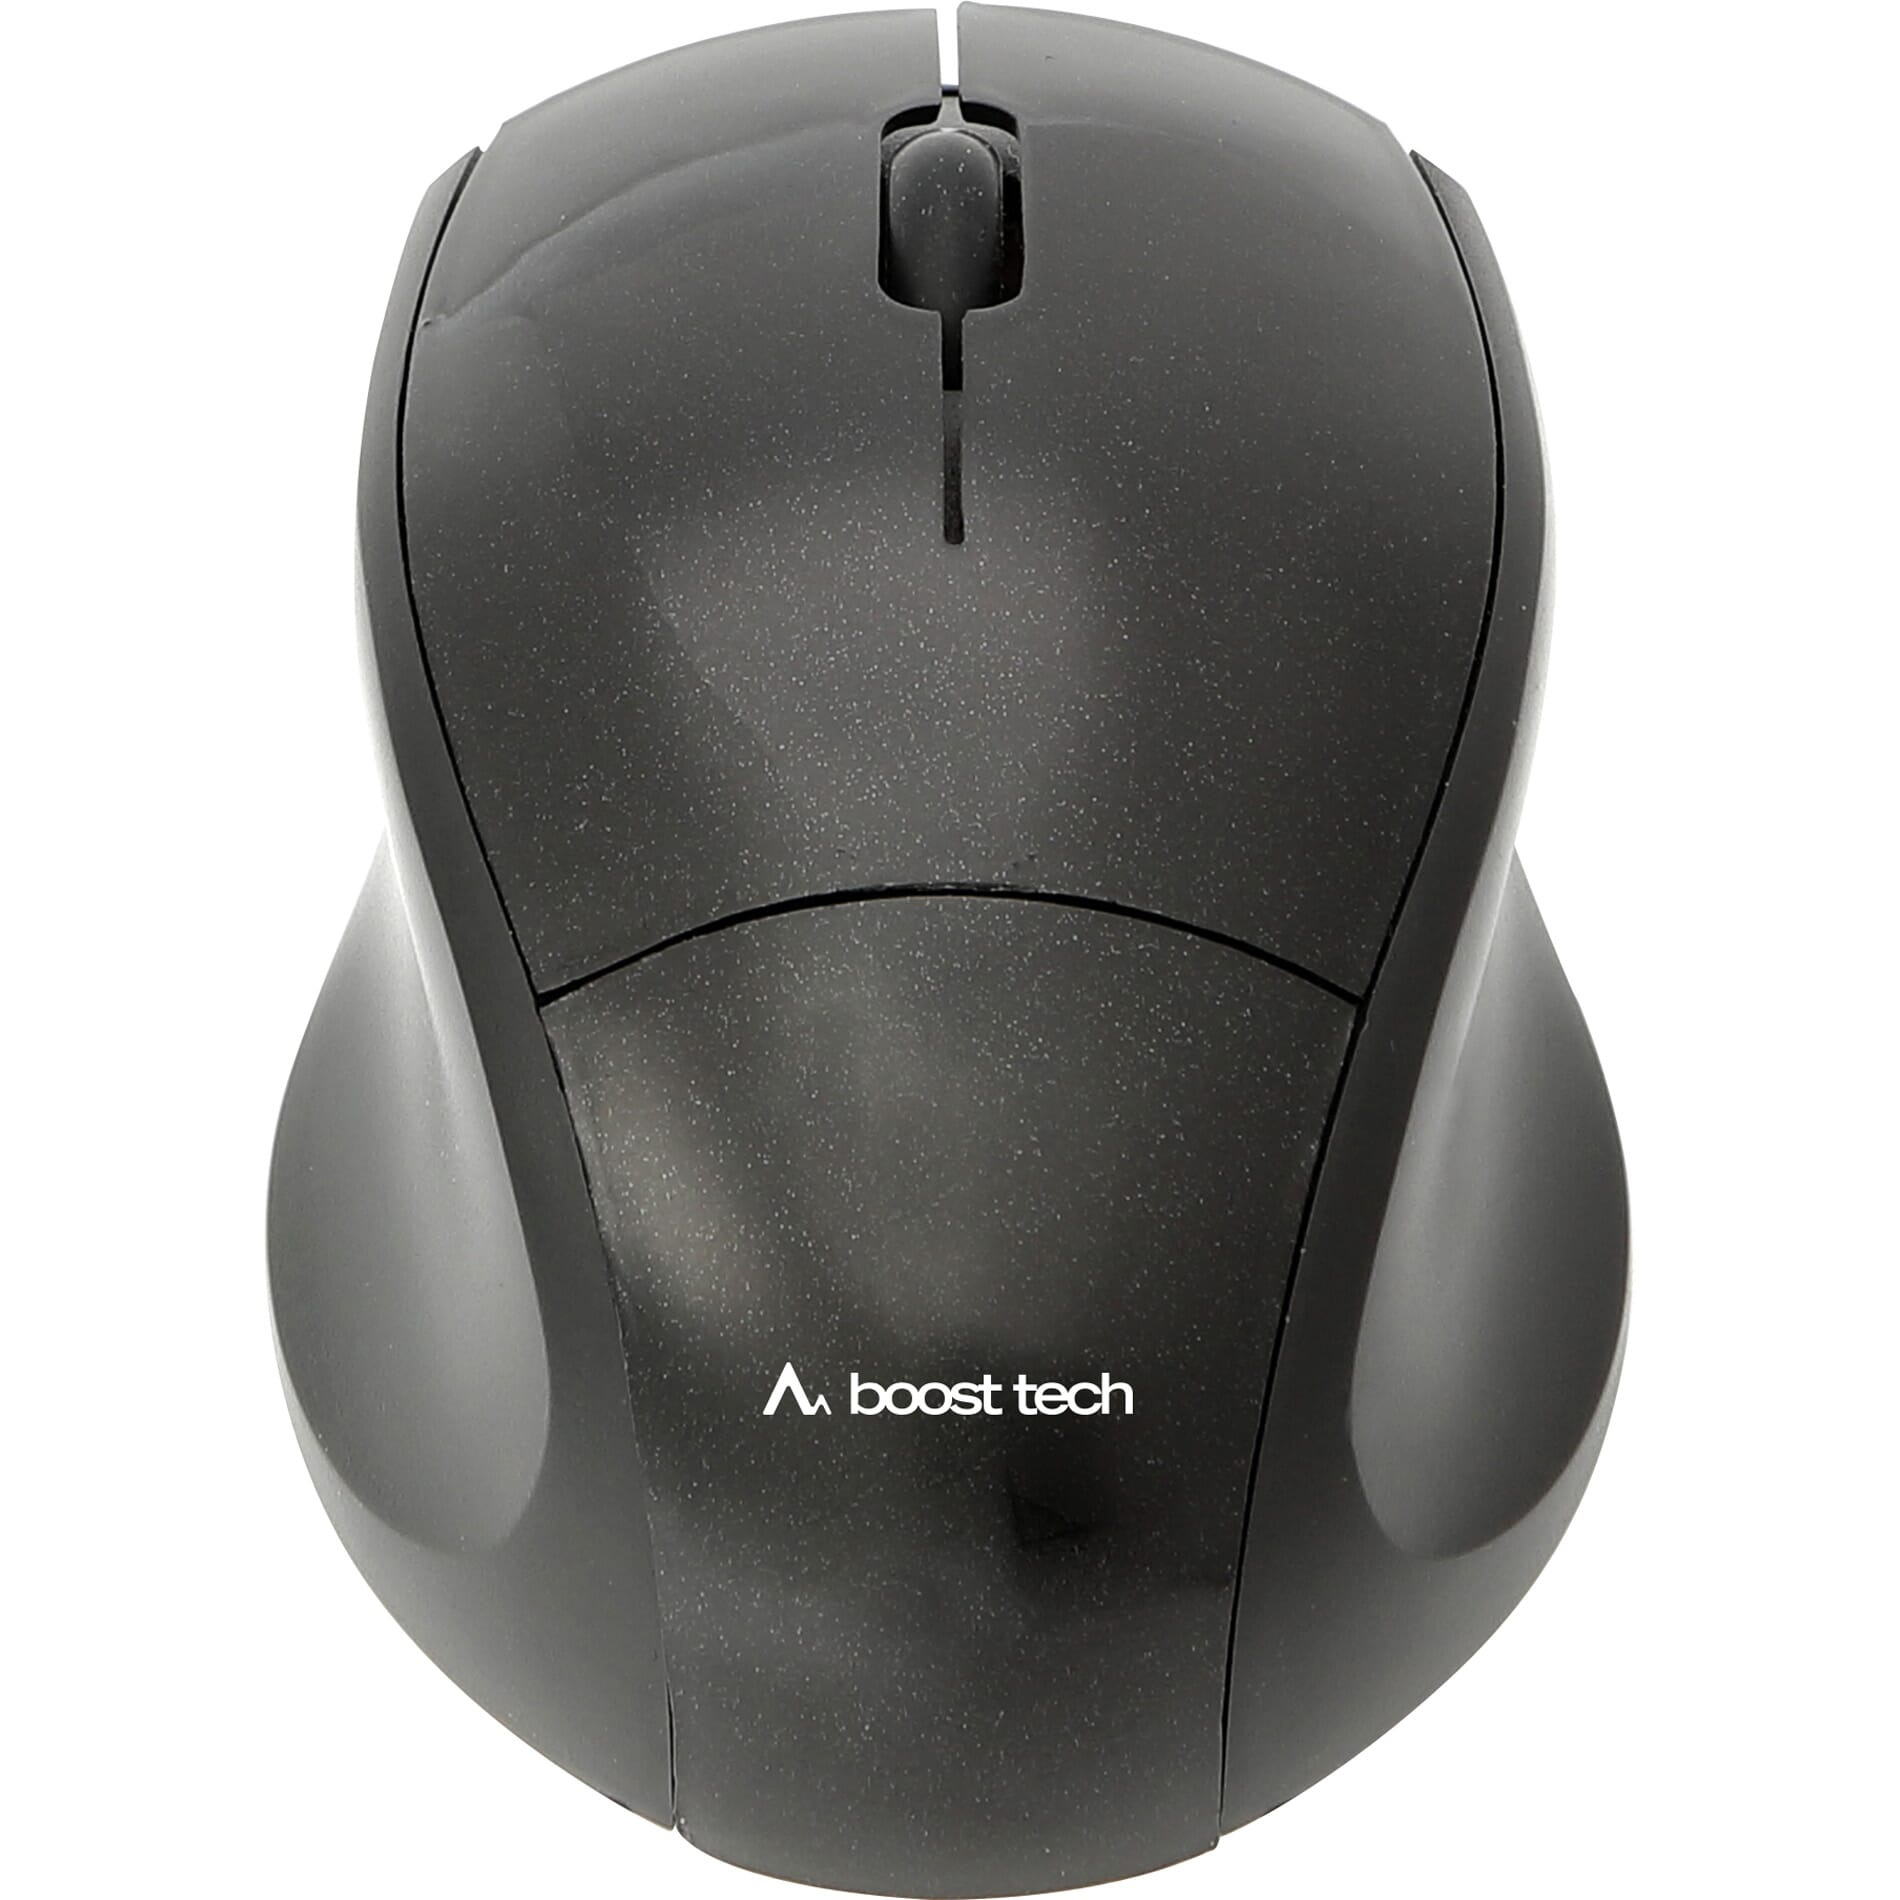 Customized wireless mouse